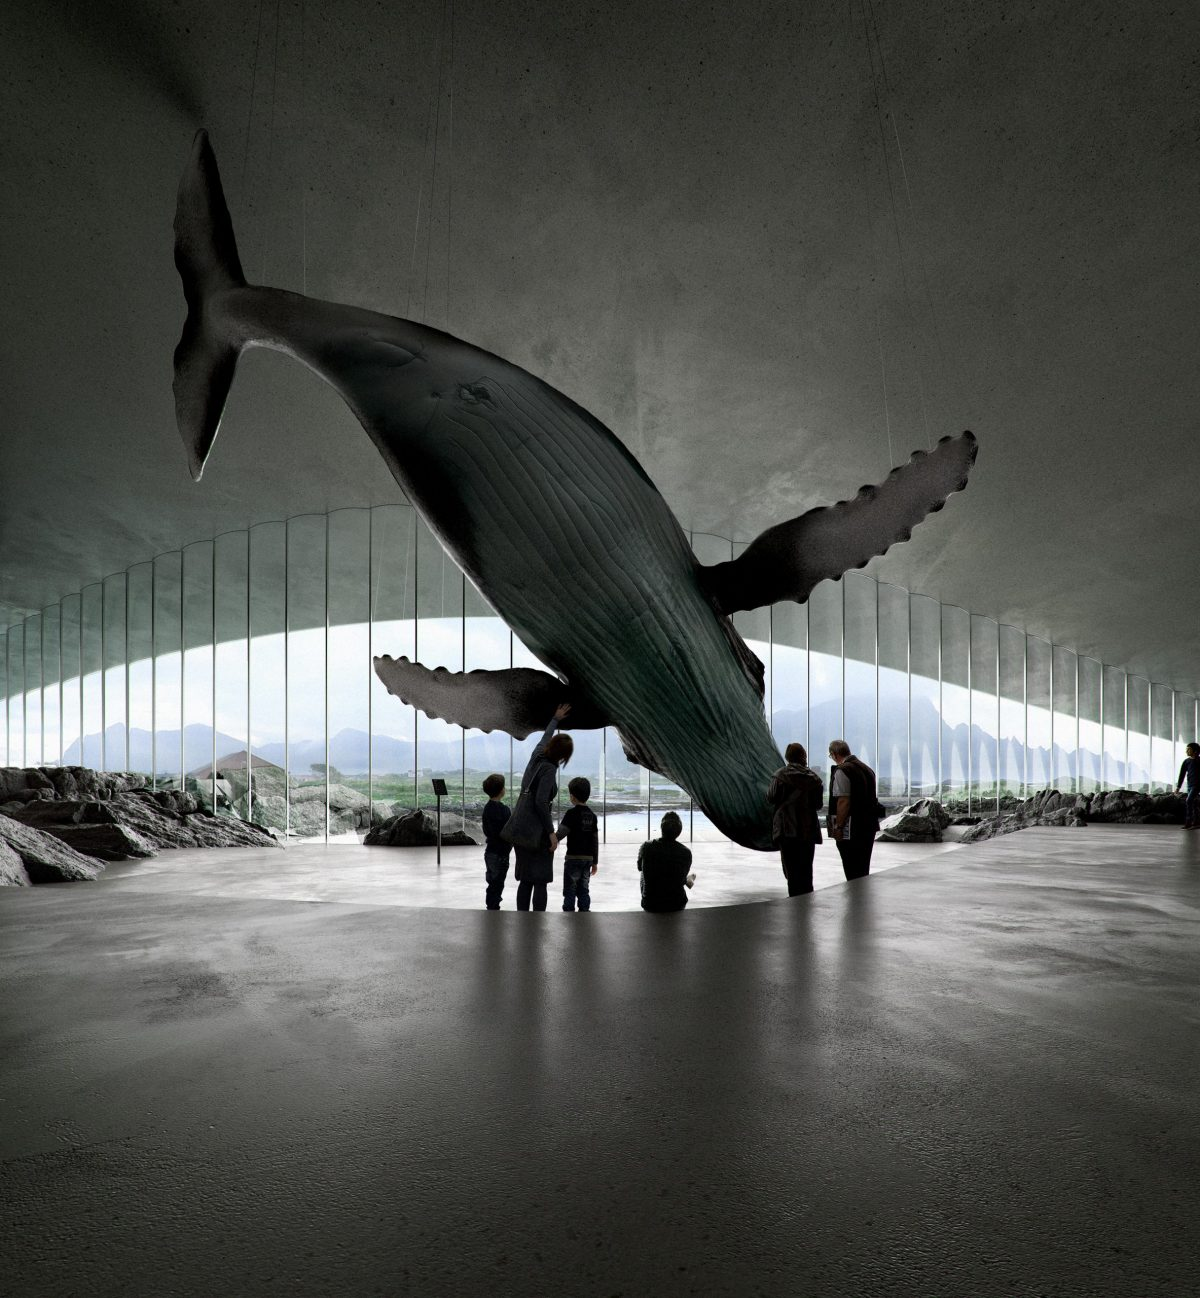 Whale watching museum